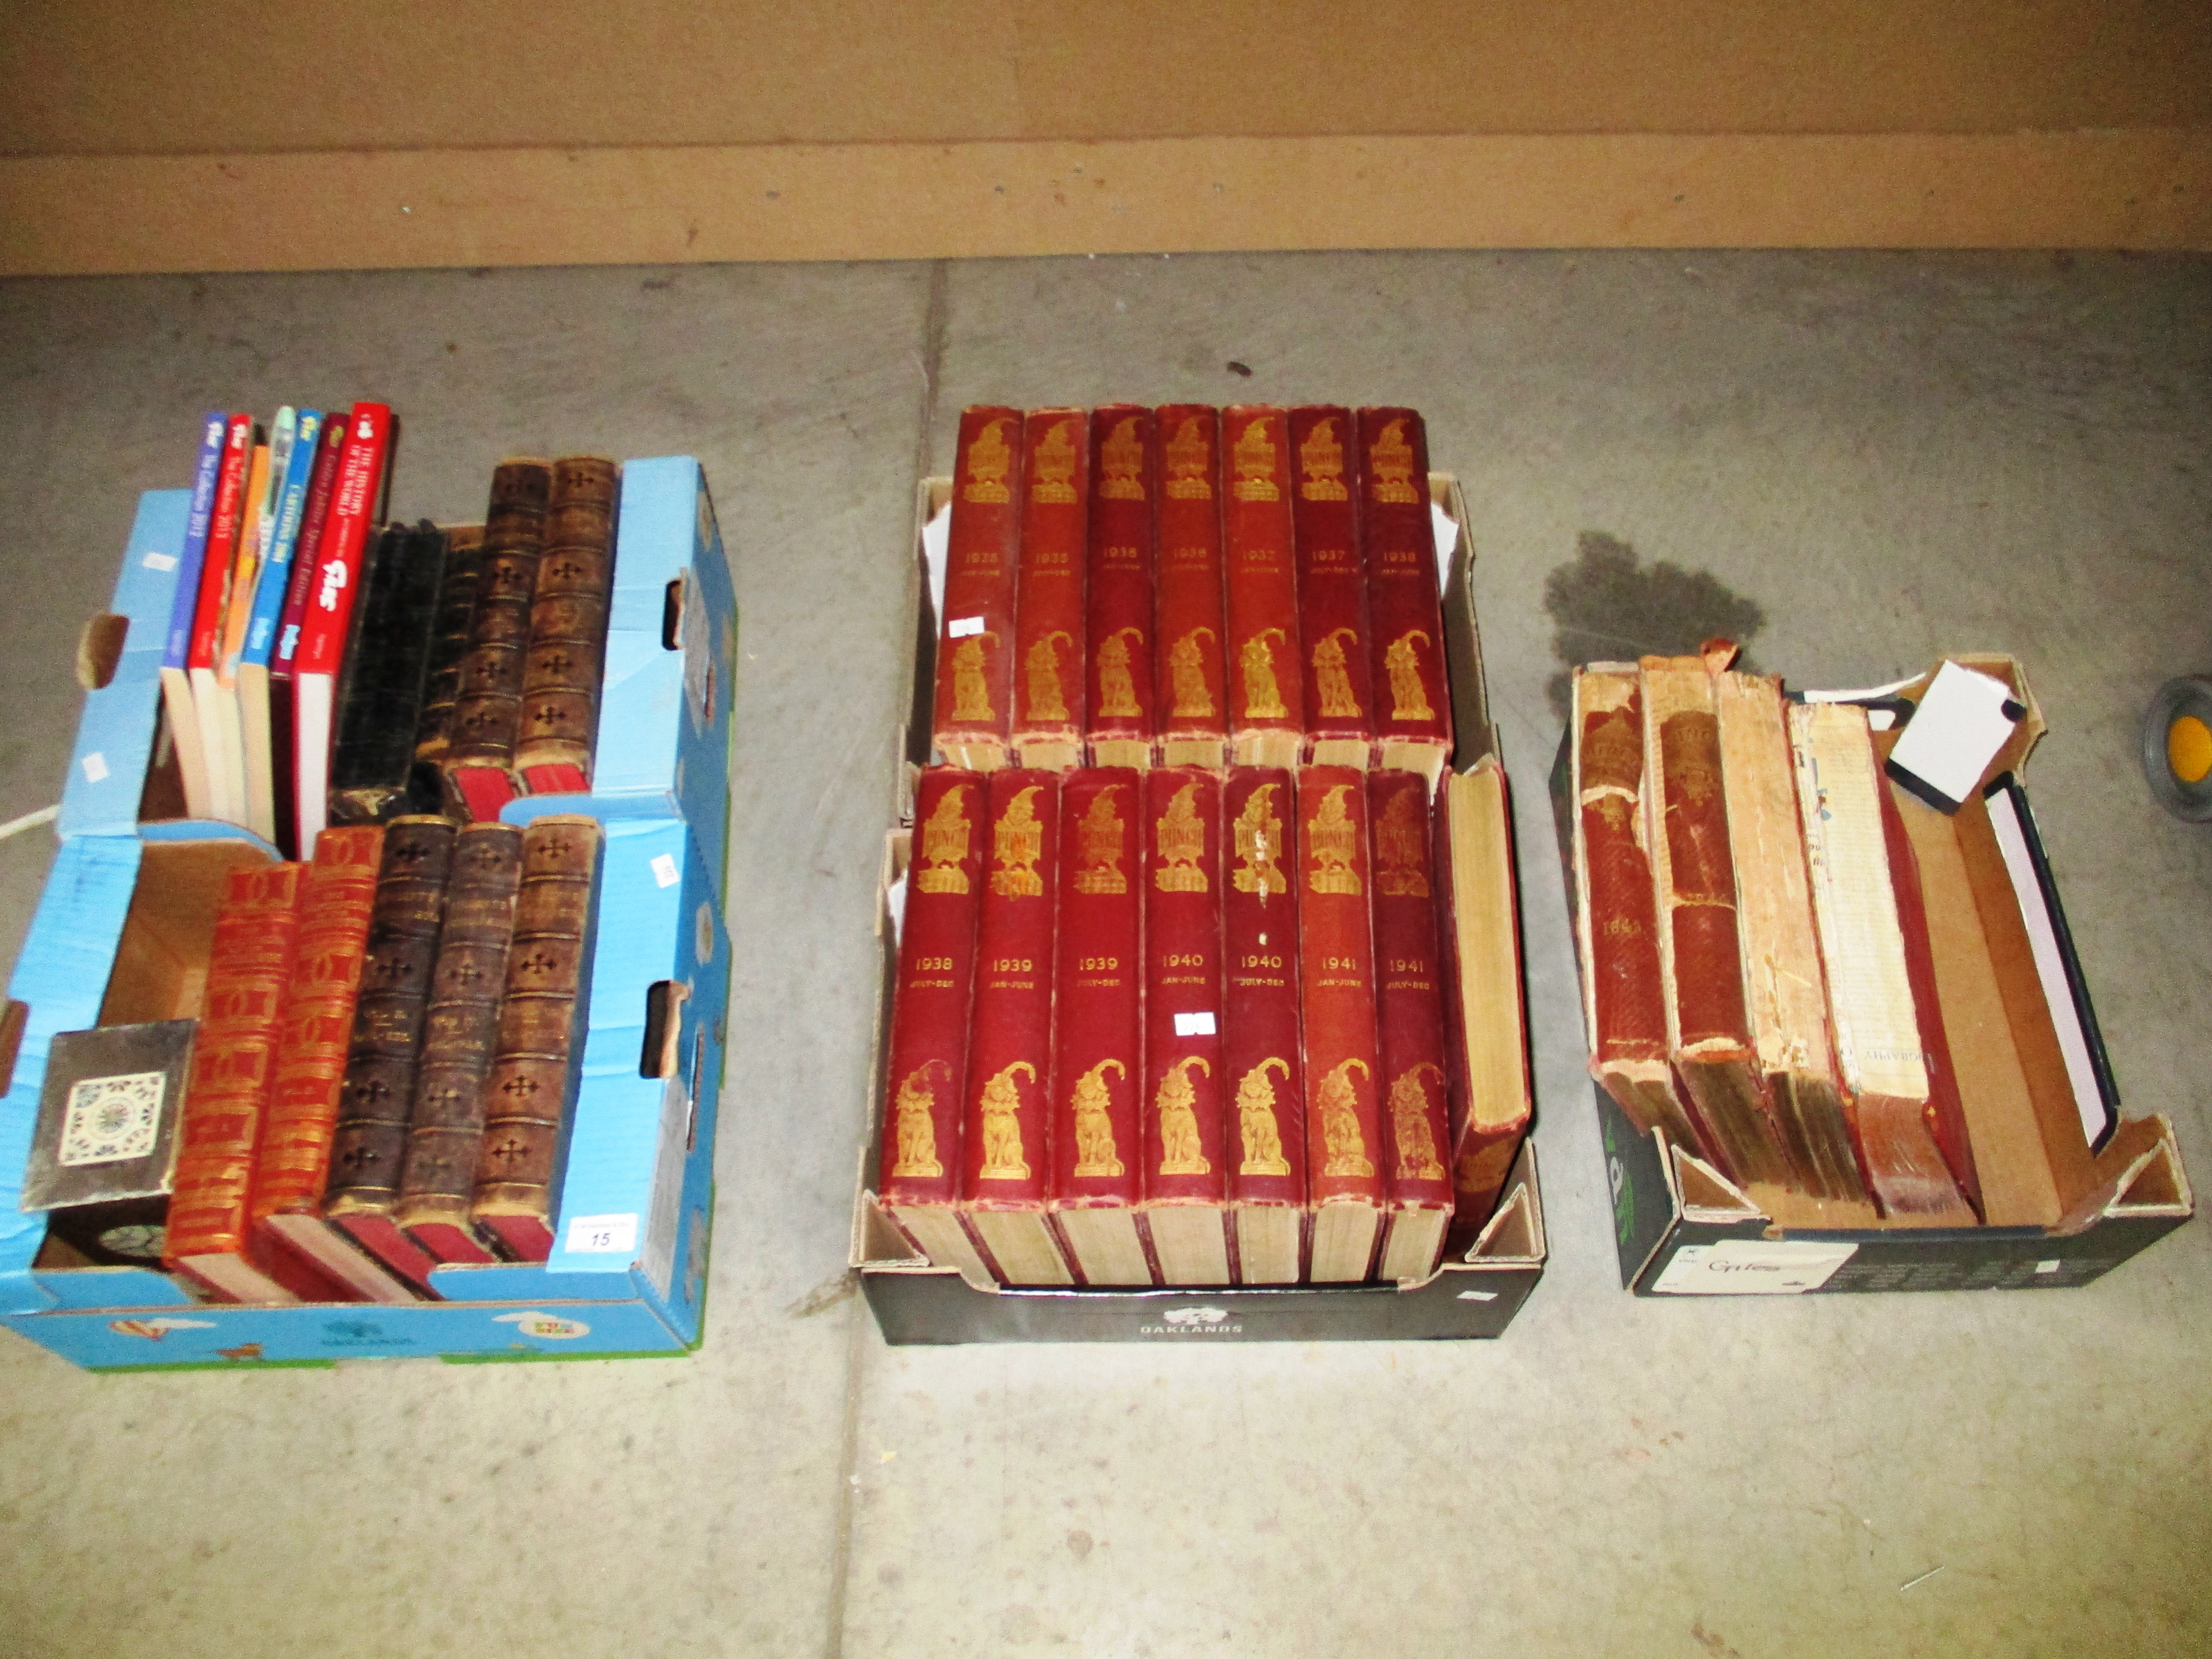 Lot 15 - A run of volumes of Punch from 1935-1942 (Jan/June), 4 other volumes of Punch 1843 etc,